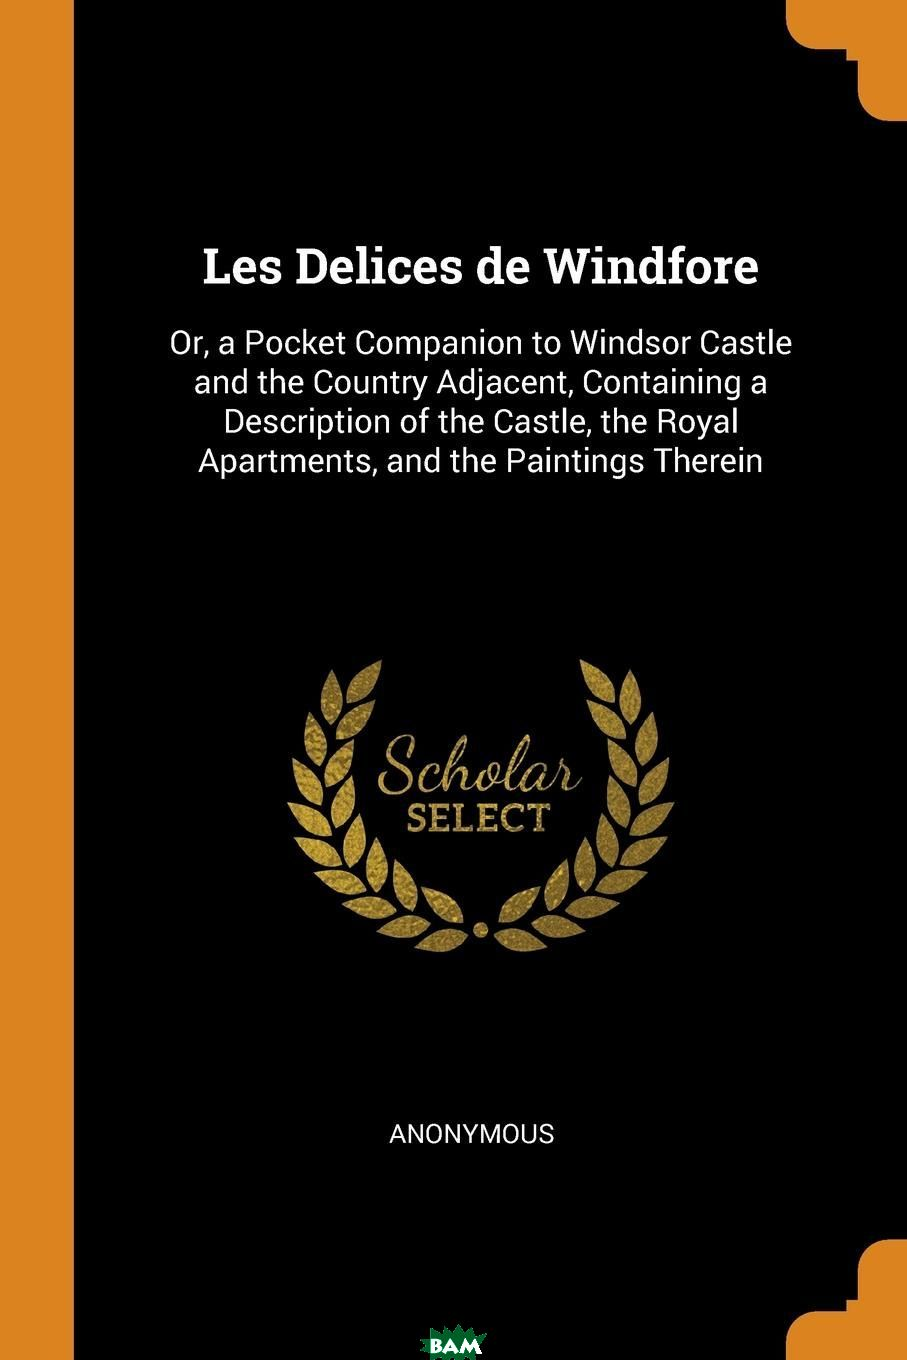 Купить Les Delices de Windfore. Or, a Pocket Companion to Windsor Castle and the Country Adjacent, Containing a Description of the Castle, the Royal Apartments, and the Paintings Therein, M. l`abbe Trochon, 9780353263741